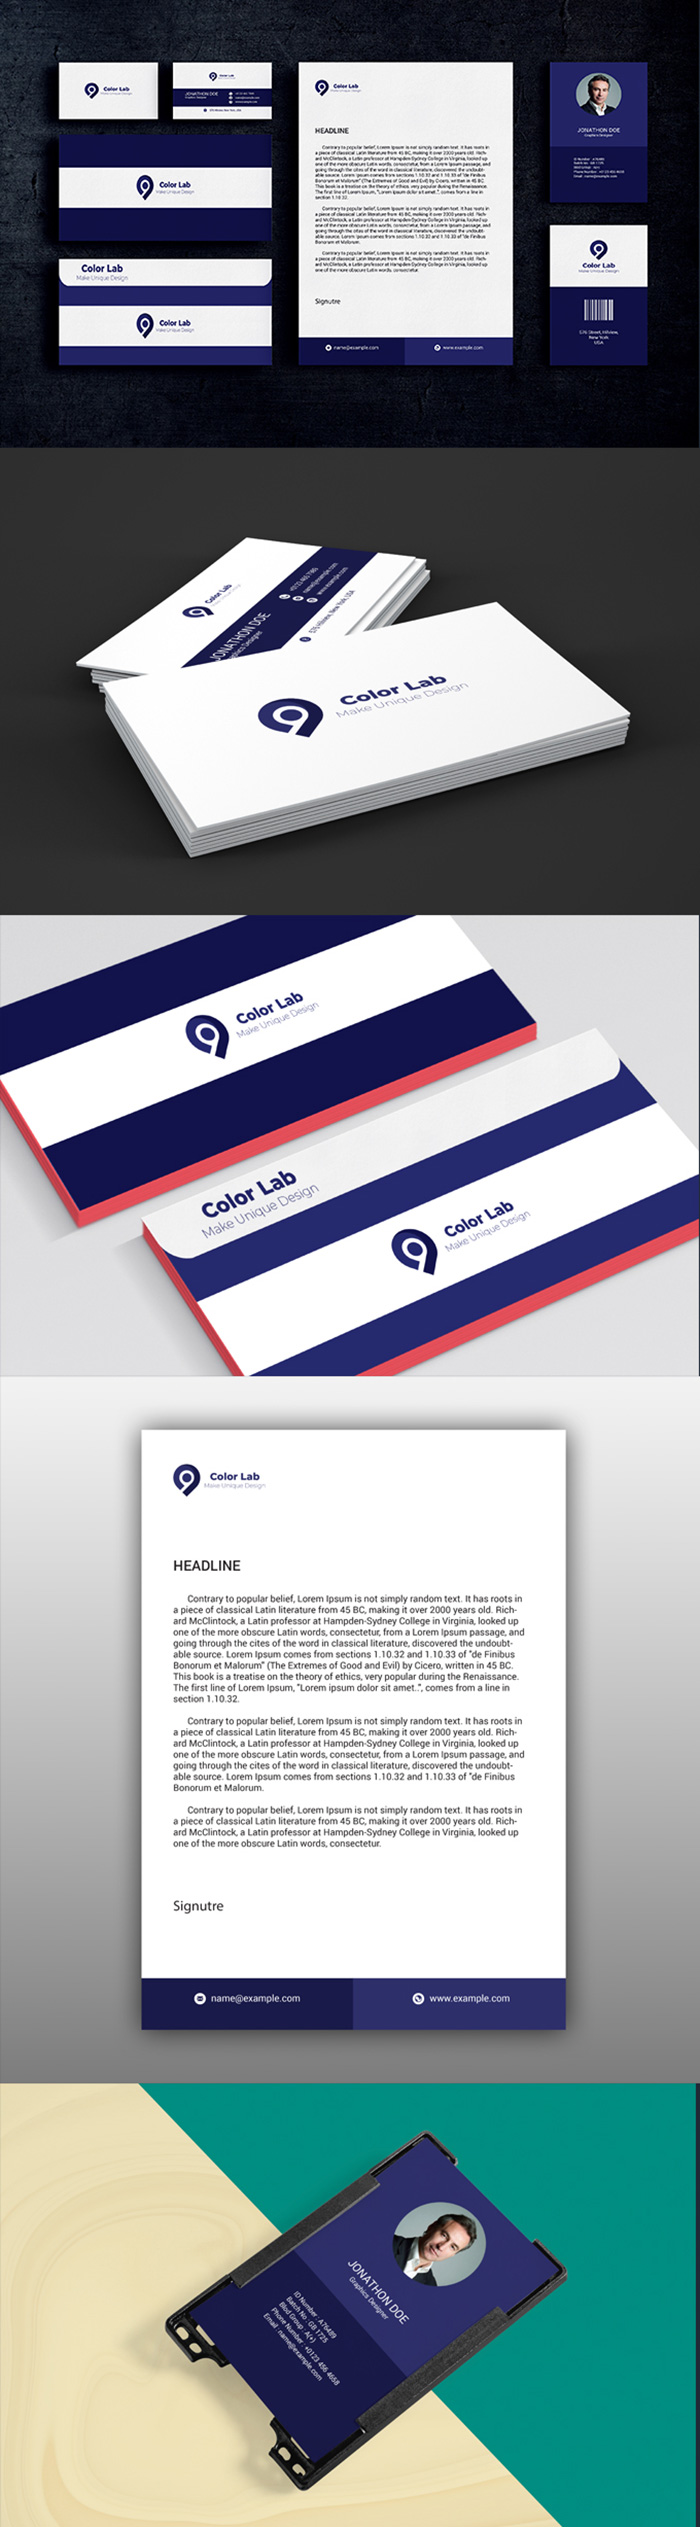 50 Corporate Identities with Extended License - 3